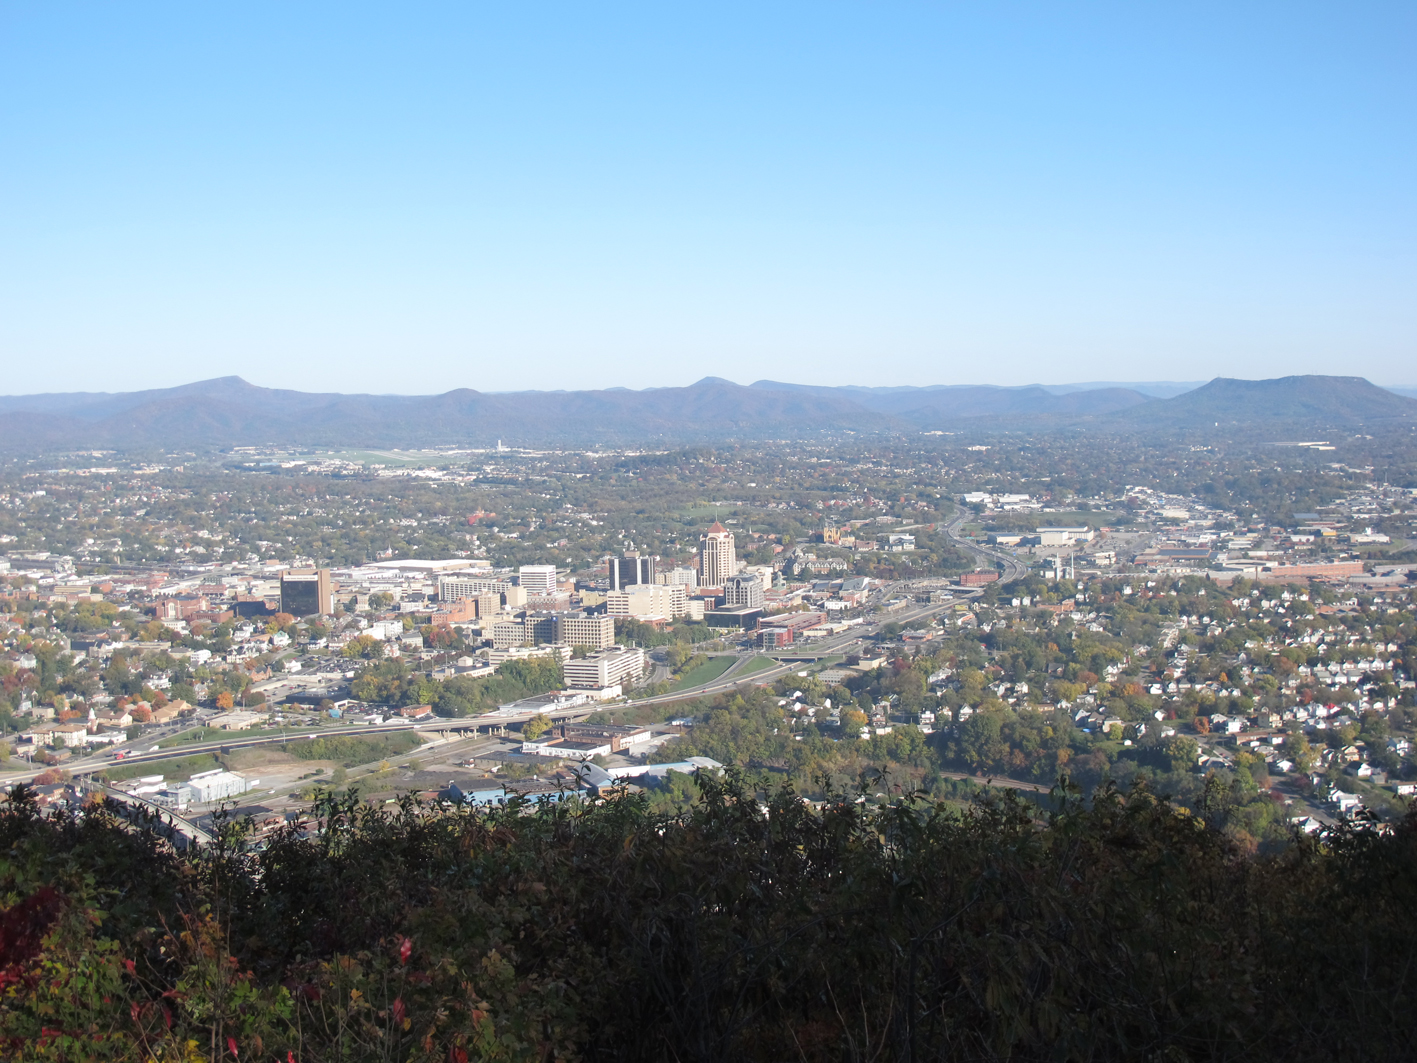 Nestled in the valley, Roanoke enjoys spectacular views of Virgnia's Blue Ridge Mountains.